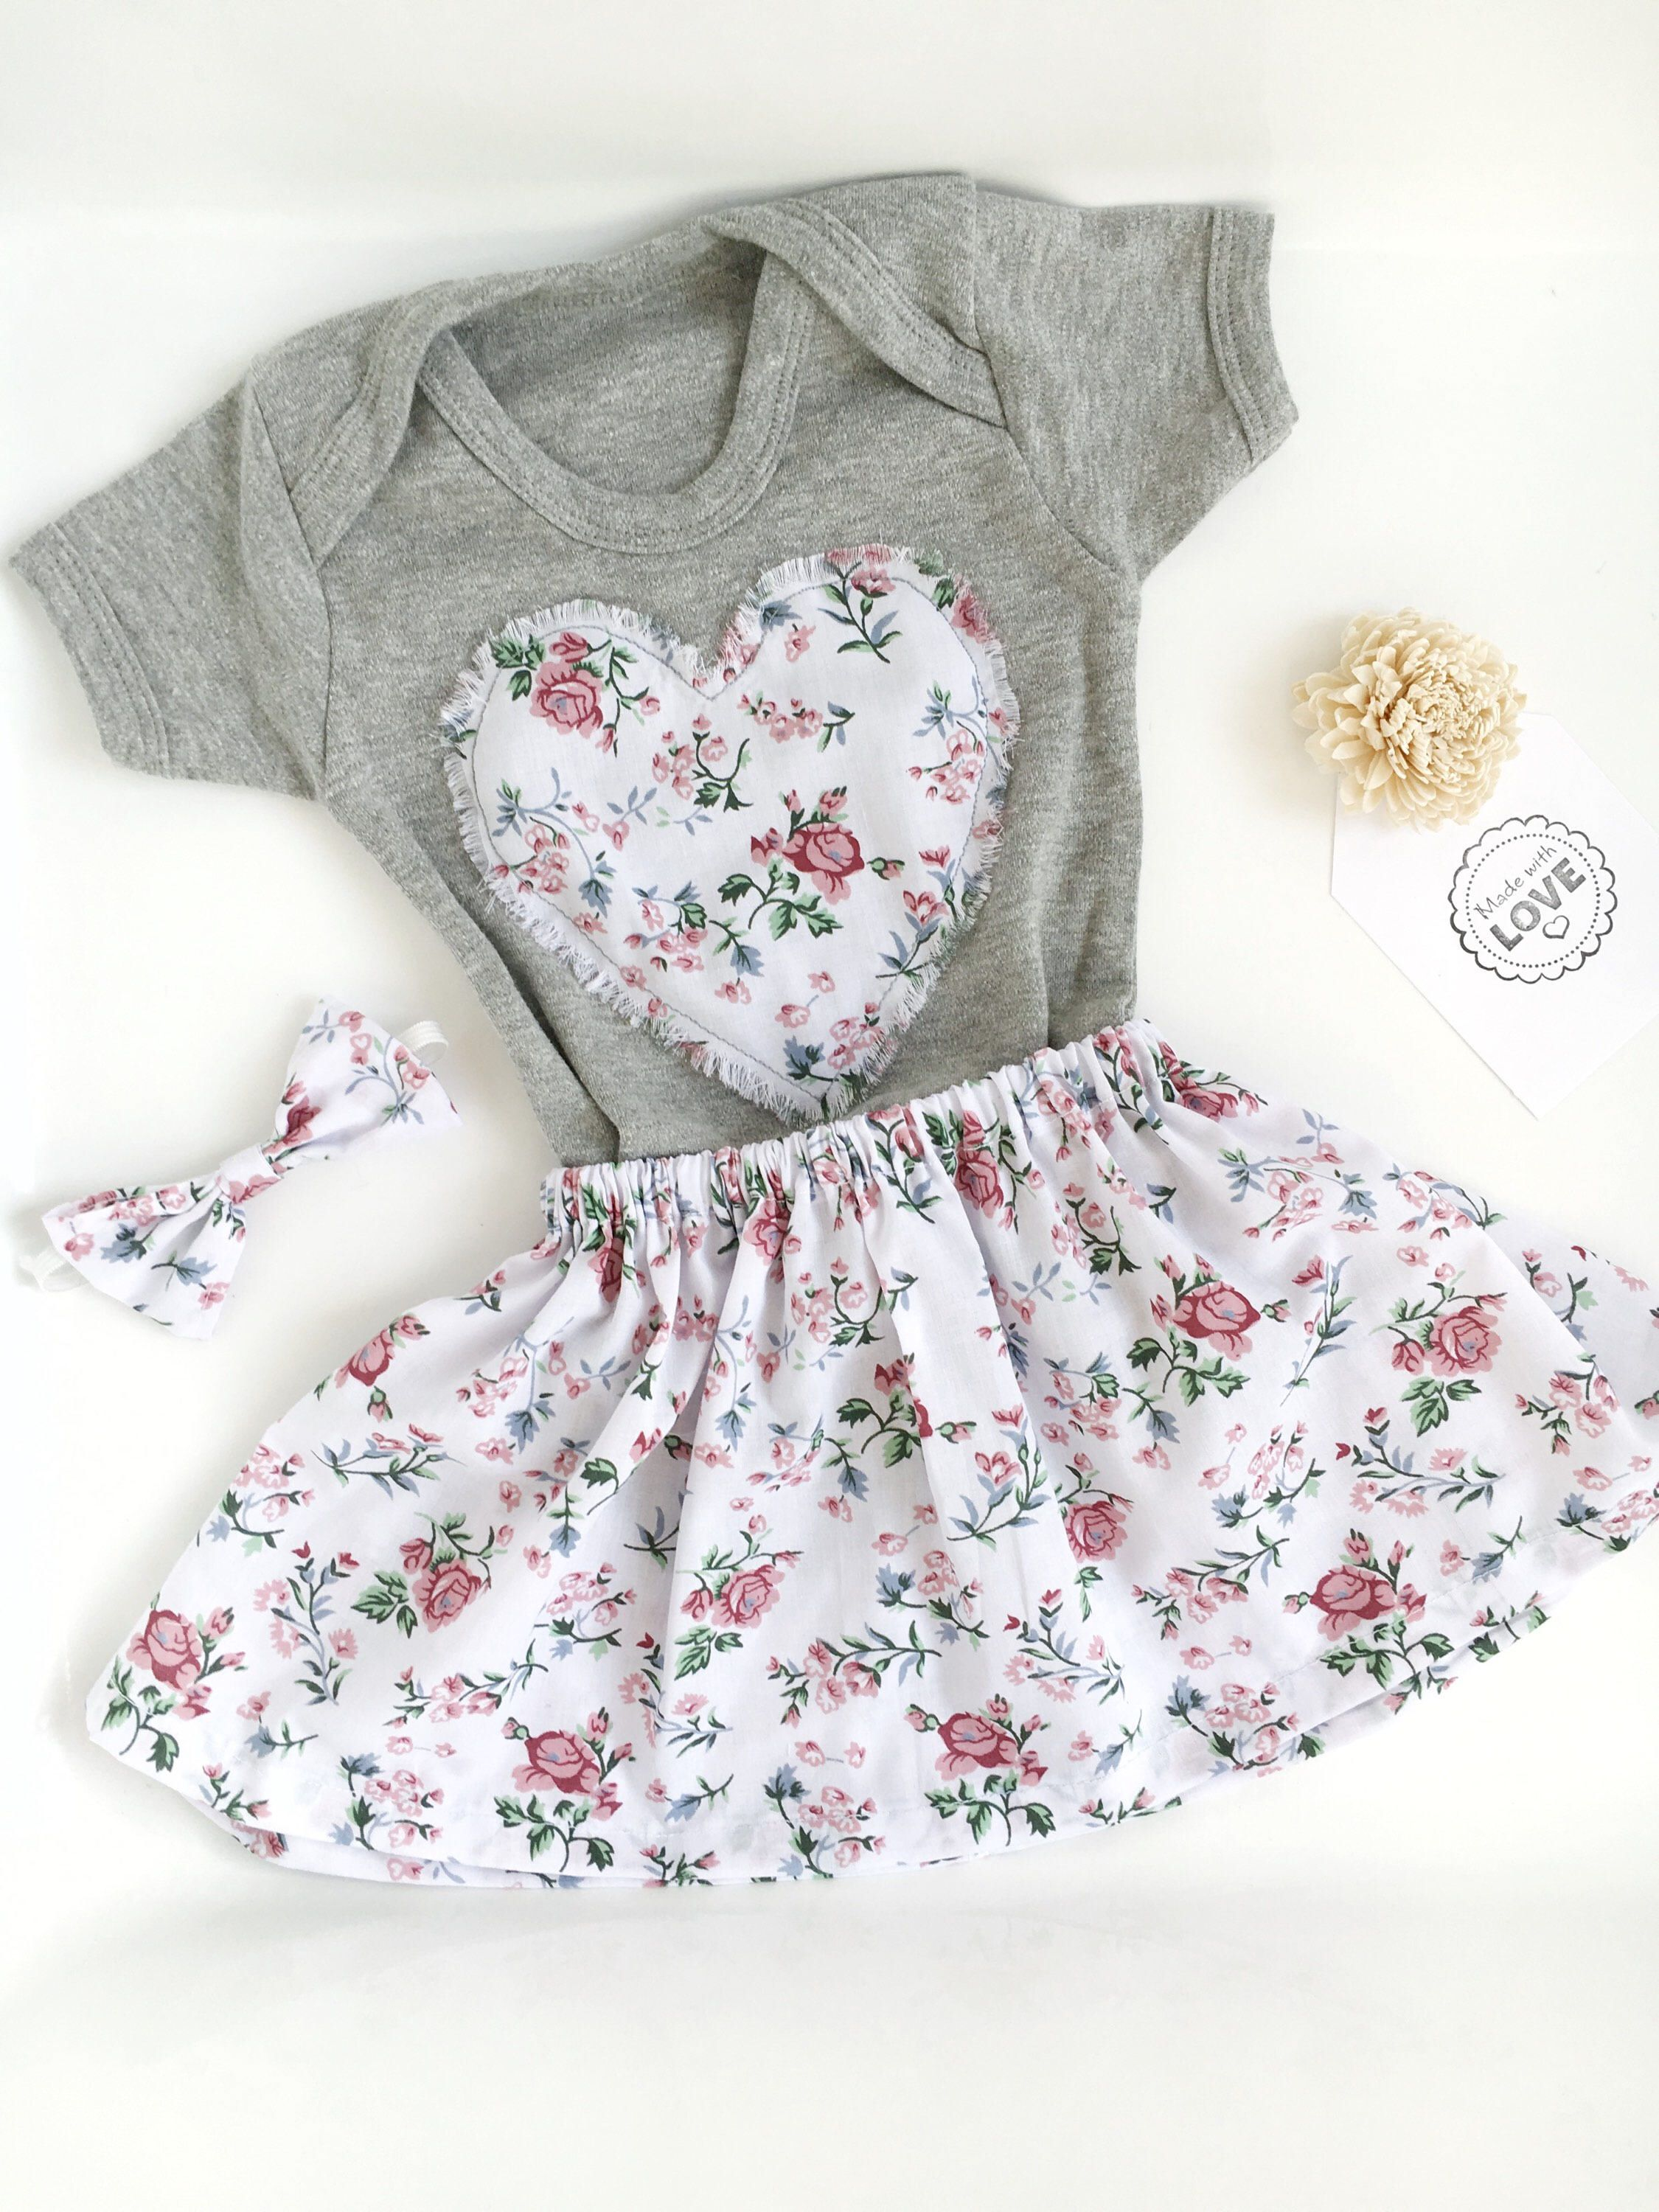 Baby Girl Outfits Newborn Baby Girl Outfits Floral Baby Girl